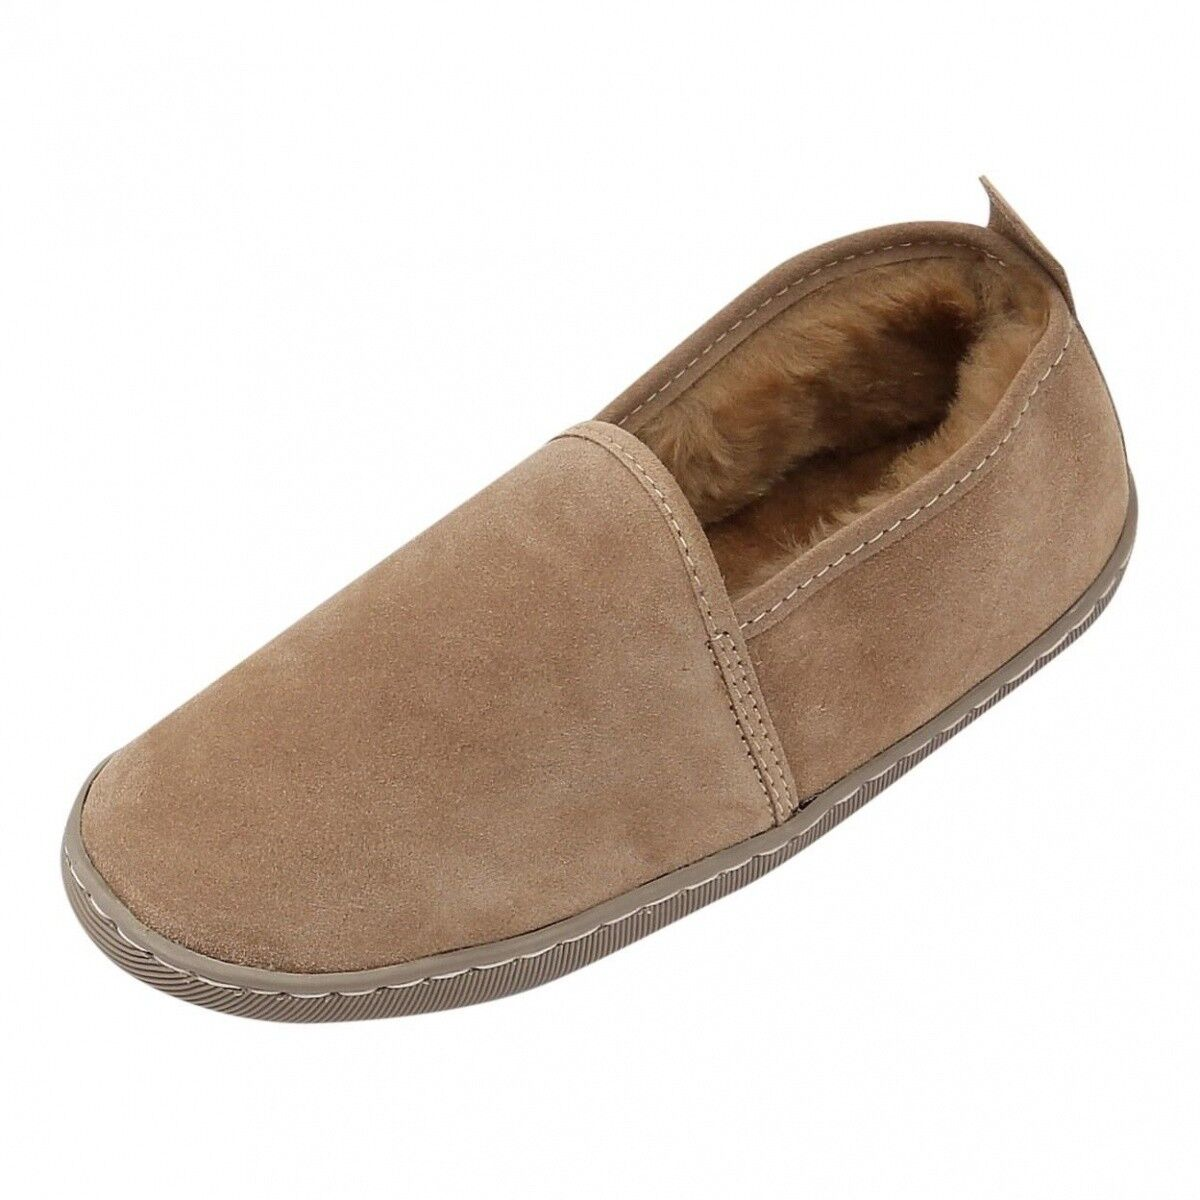 Lamb Wool House shoes - Hubert Unisex fur shoes Genuine Merino fur and Leather